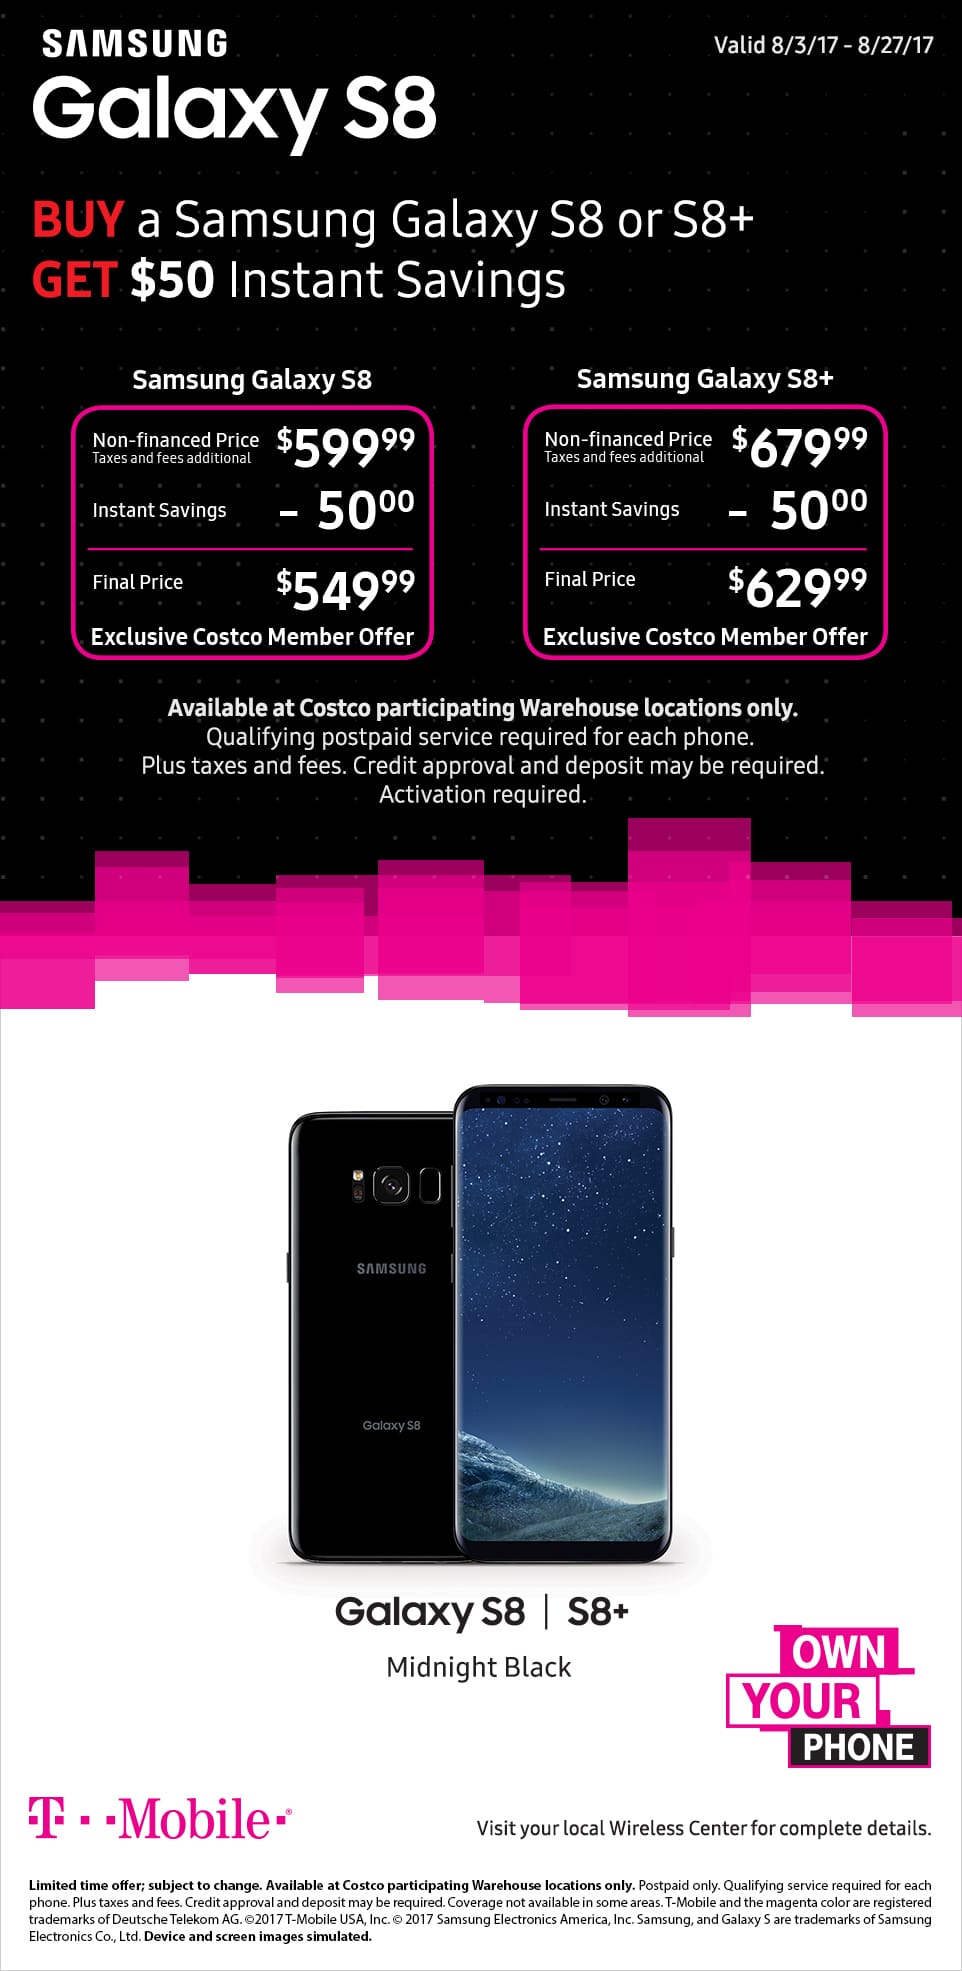 Costco Members Get a T-Mobile Samsung Galaxy S8 for $549 ($200 instant savings) or S8+ for $629 ($220 instant savings) with New Own Your Phone Program